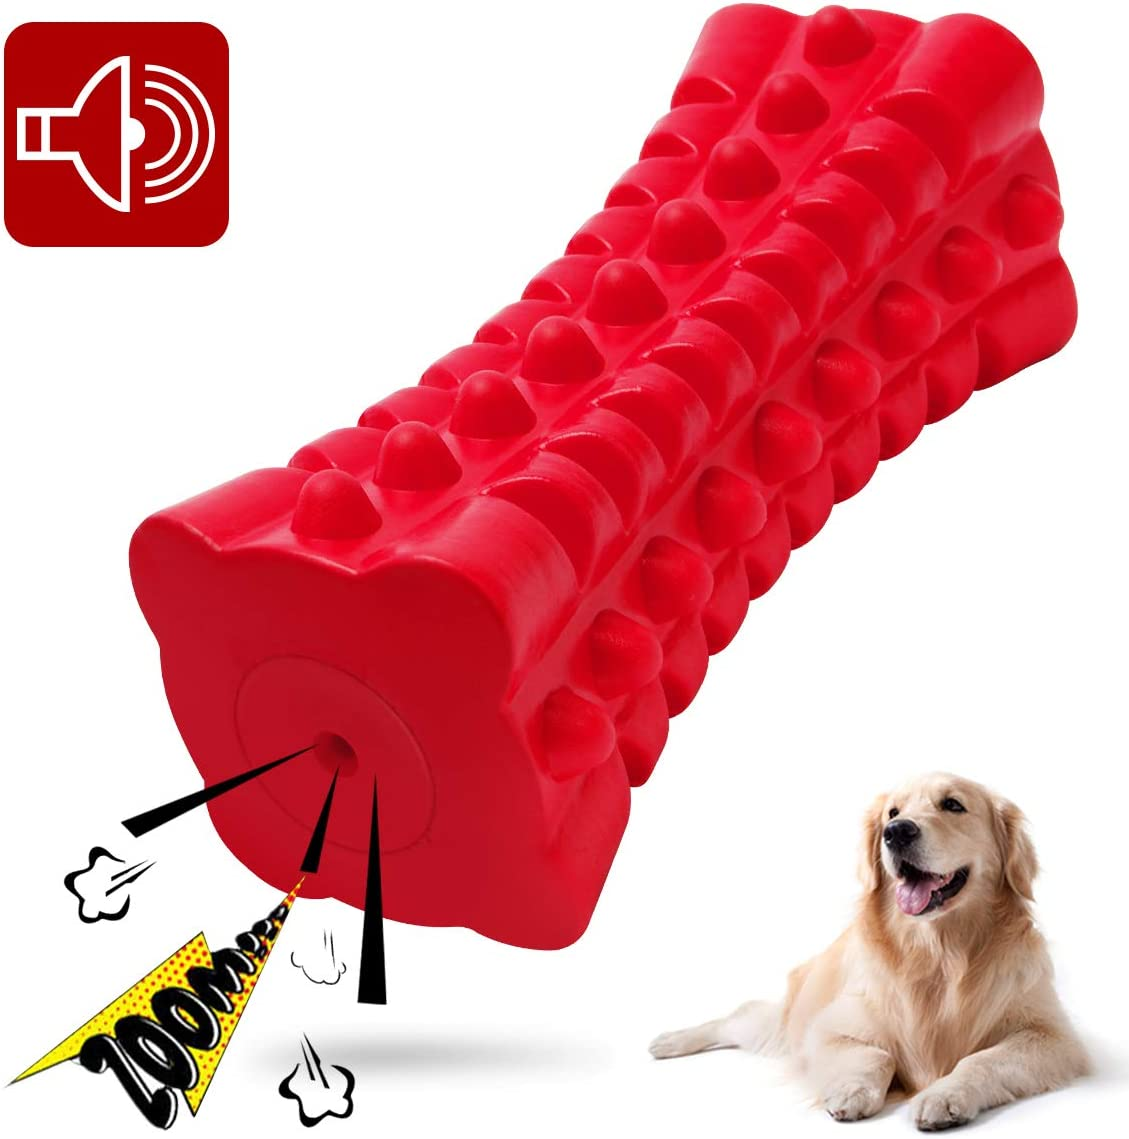 VANFINE Dog Squeaky Toys Almost Indestructible Tough Durable Dog Toys Dog chew Toys for Large Dogs Aggressive chewers Squeaky Stick Toys Puppy Chew Toys with Non-Toxic Natural Rubber